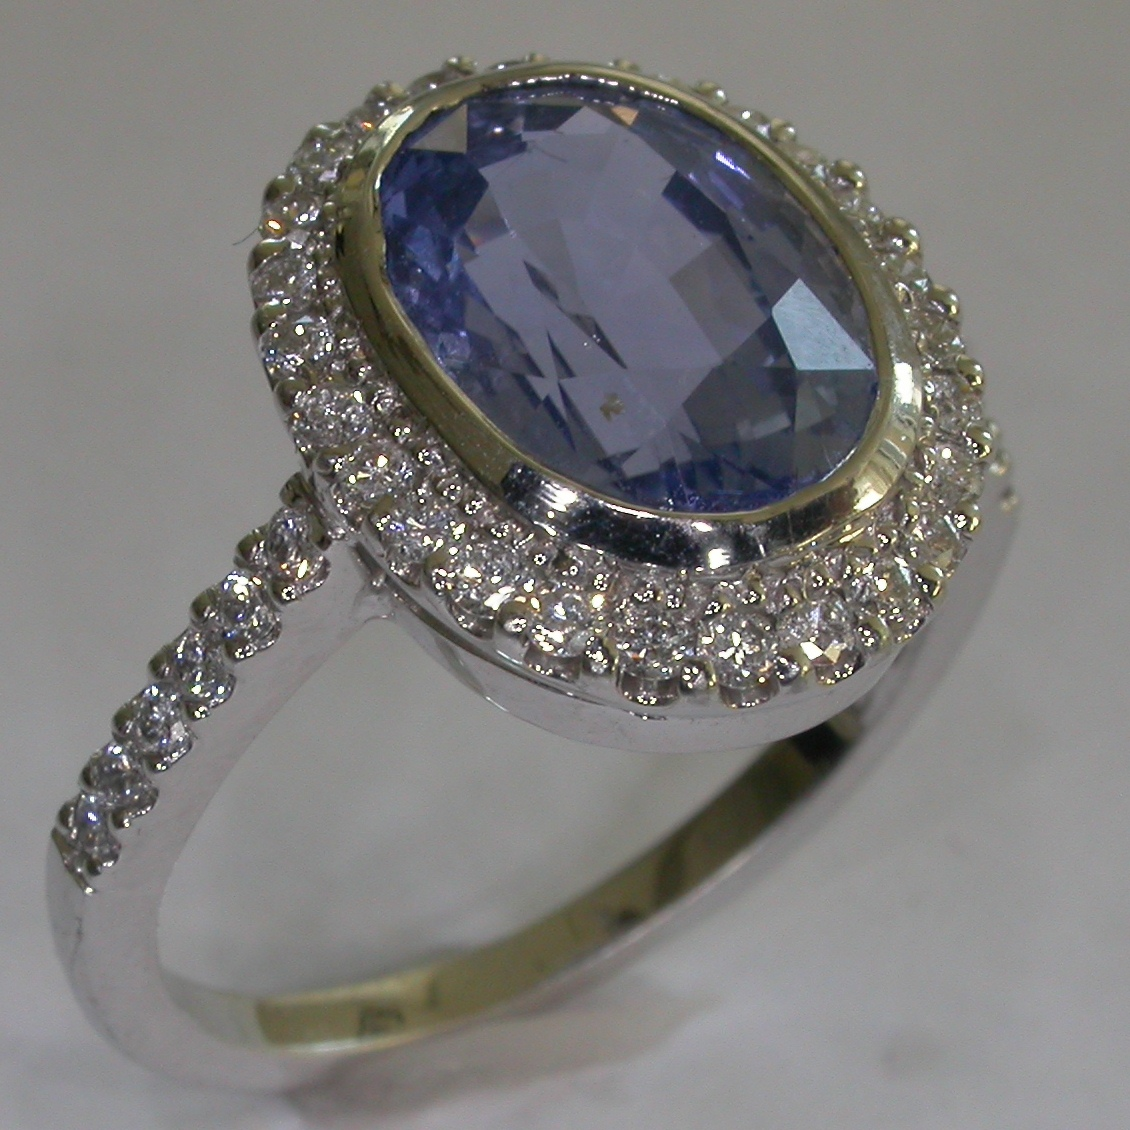 Melbourne Coloured Stone Engagement Rings - #7359